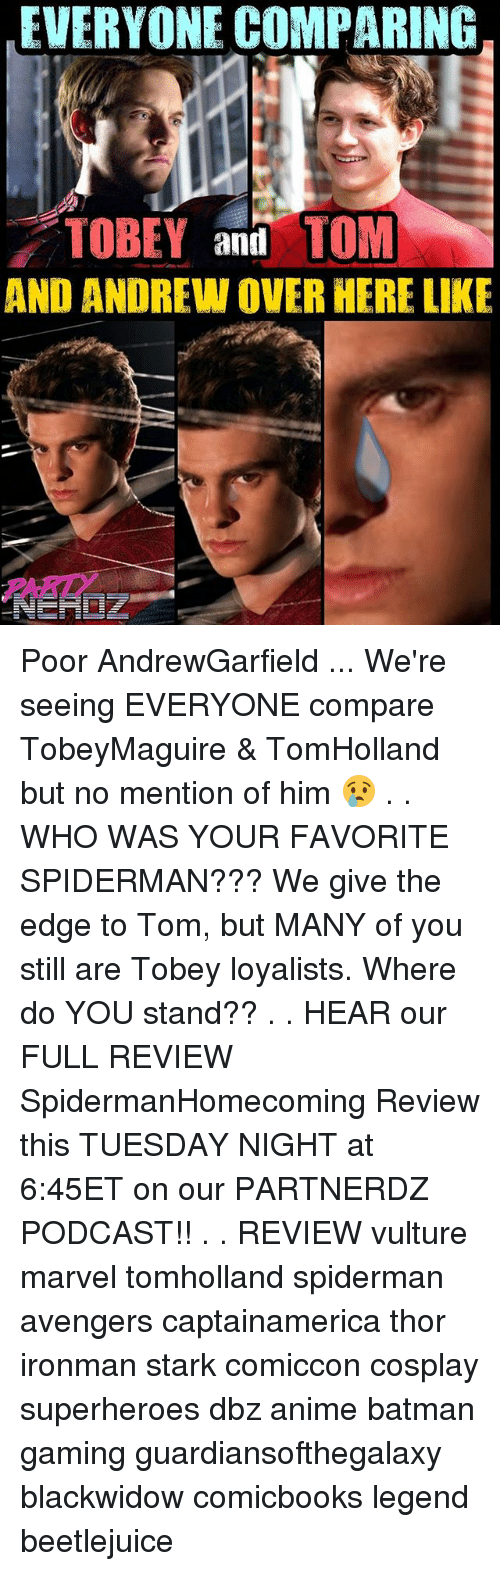 Anime, Batman, and Memes: EVERYONE COMPARING  TOBEY and TOM  AND ANDREW OVER HERE LIKE  PARD Poor AndrewGarfield ... We're seeing EVERYONE compare TobeyMaguire & TomHolland but no mention of him 😢 . . WHO WAS YOUR FAVORITE SPIDERMAN??? We give the edge to Tom, but MANY of you still are Tobey loyalists. Where do YOU stand?? . . HEAR our FULL REVIEW SpidermanHomecoming Review this TUESDAY NIGHT at 6:45ET on our PARTNERDZ PODCAST!! . . REVIEW vulture marvel tomholland spiderman avengers captainamerica thor ironman stark comiccon cosplay superheroes dbz anime batman gaming guardiansofthegalaxy blackwidow comicbooks legend beetlejuice